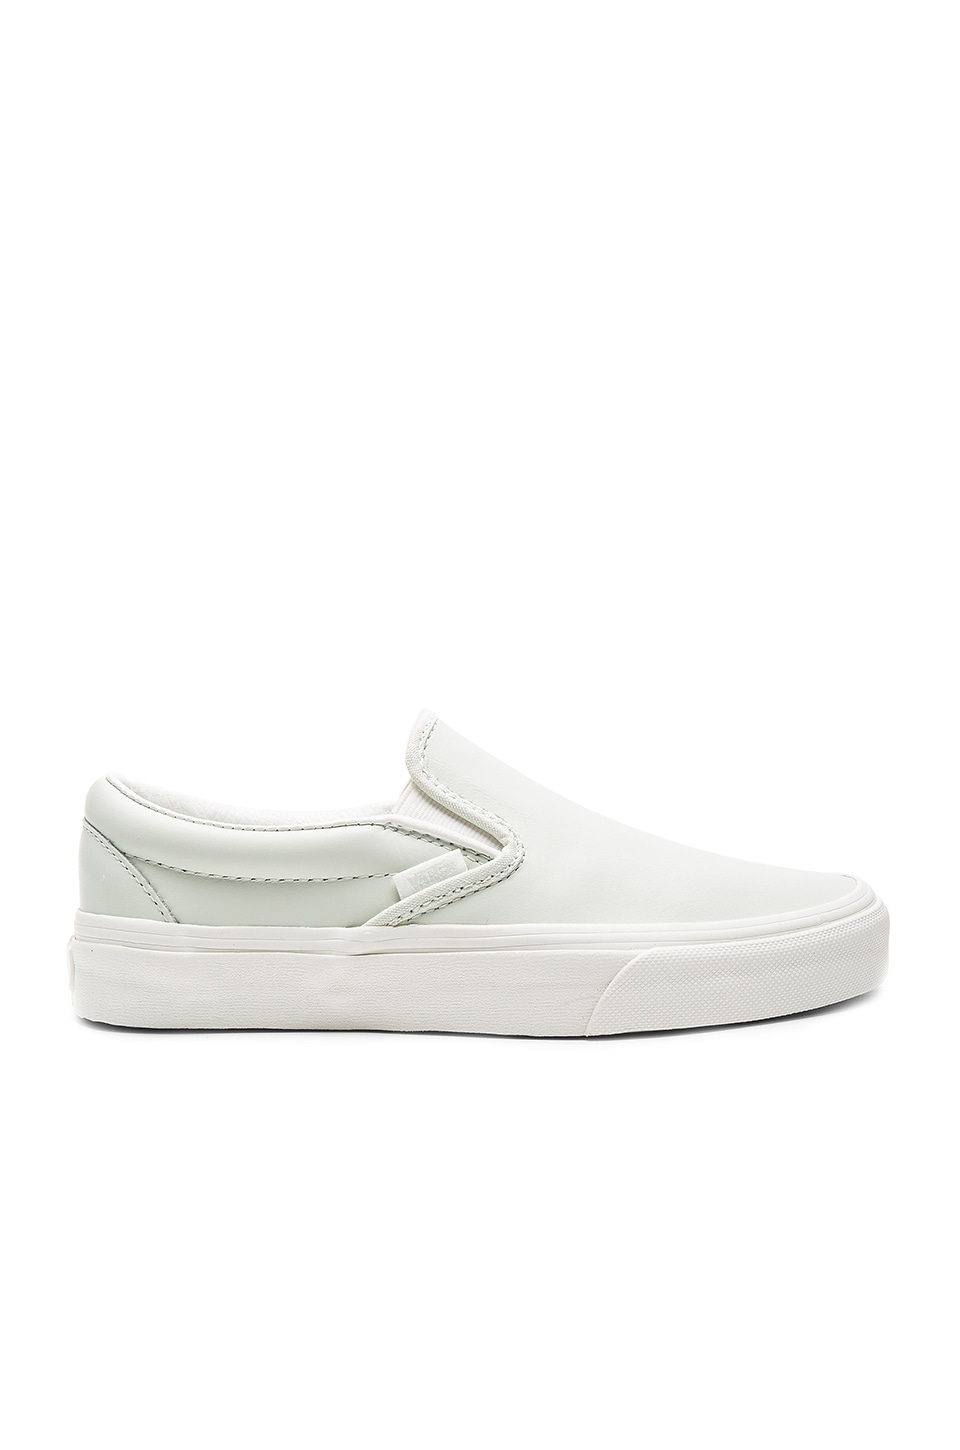 Vans Classic Slip-On Sneaker in Blue & Blanc De Blanc